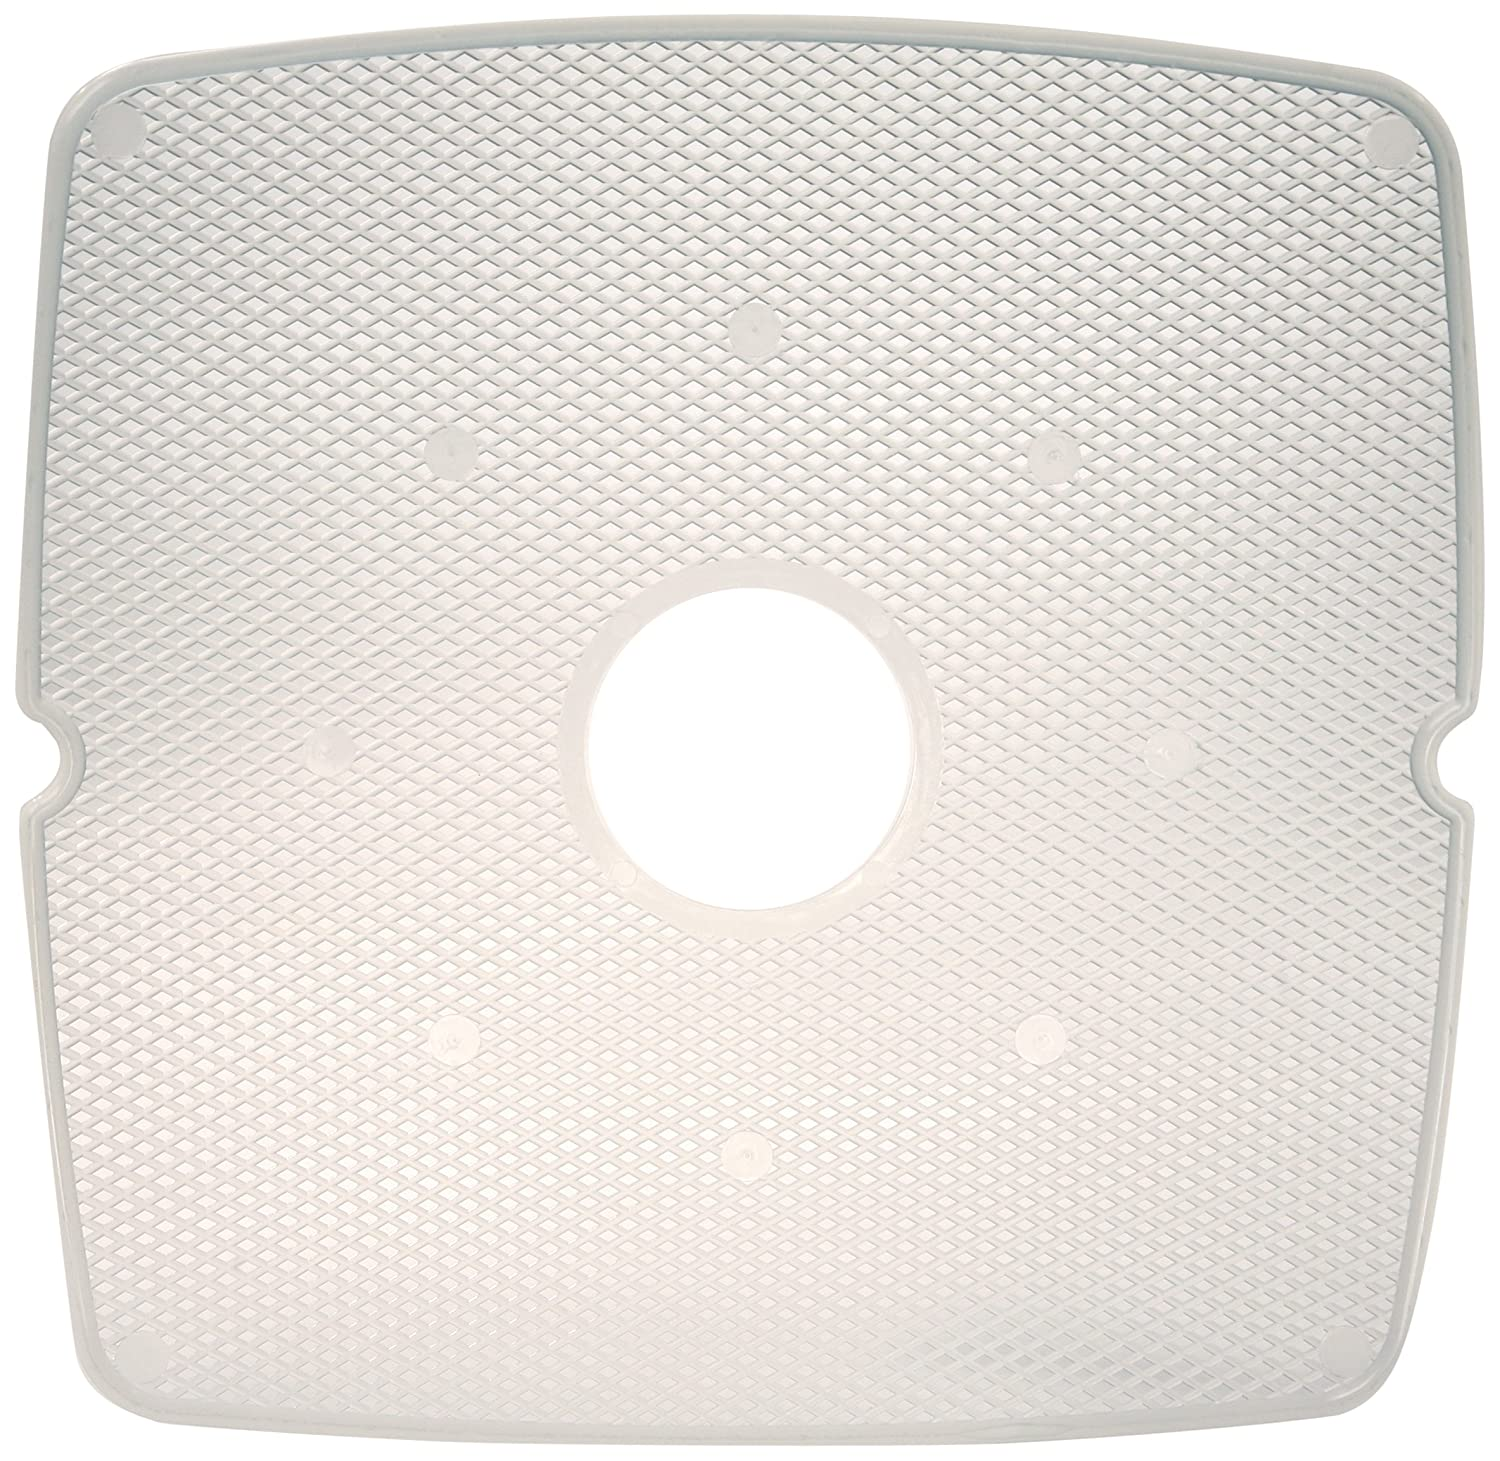 Nesco SQM-2-6 Clean-a-Screen for FD-80 and FD-80A Series, Square Dehydrators, Clear